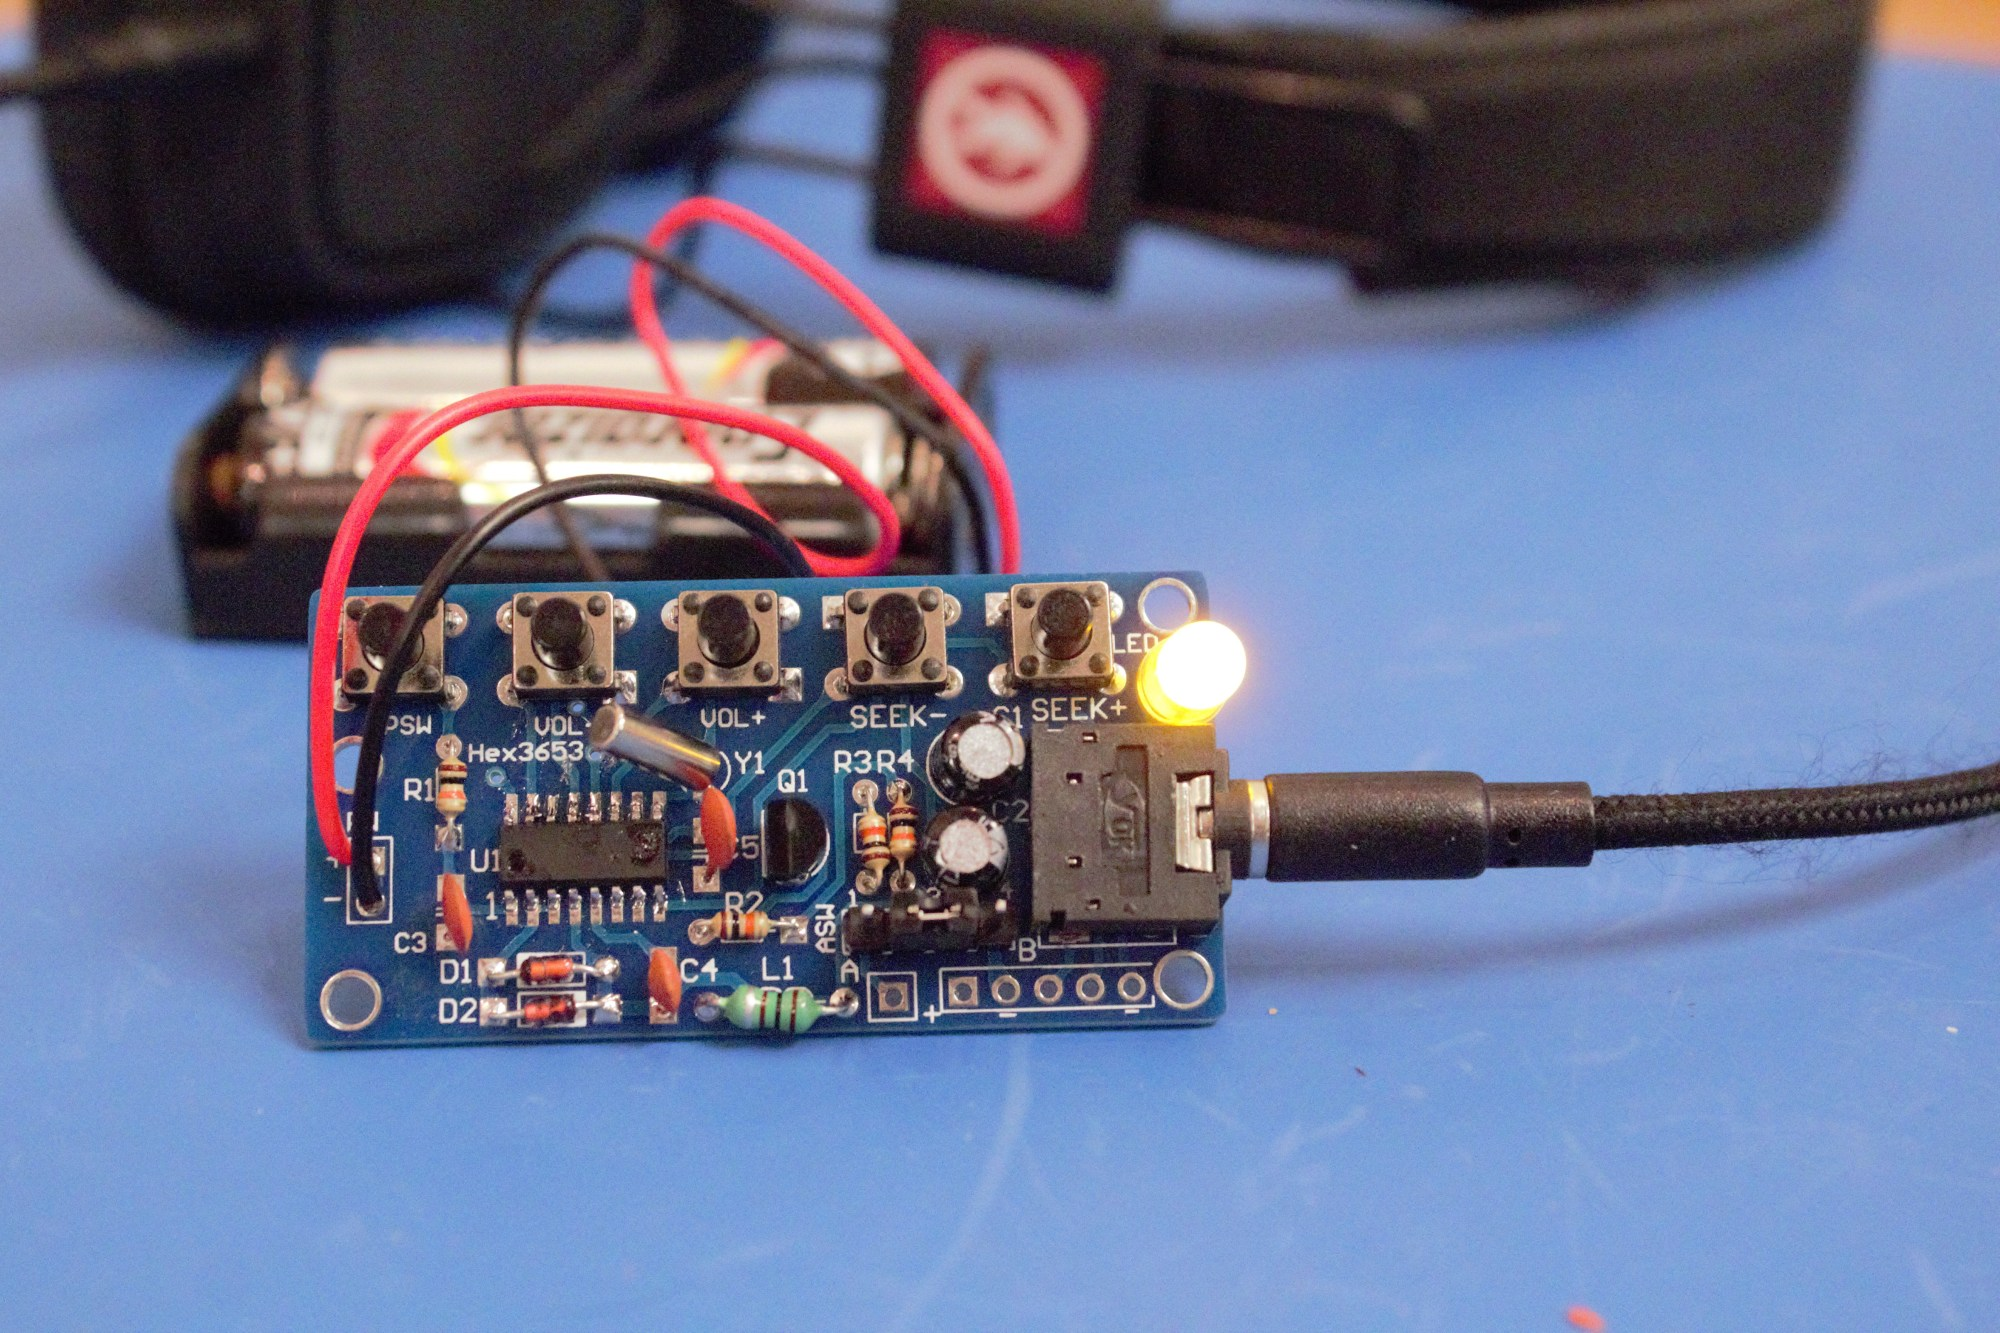 hight resolution of step by step guide to building the fm radio receiver hex 3653 chip kit